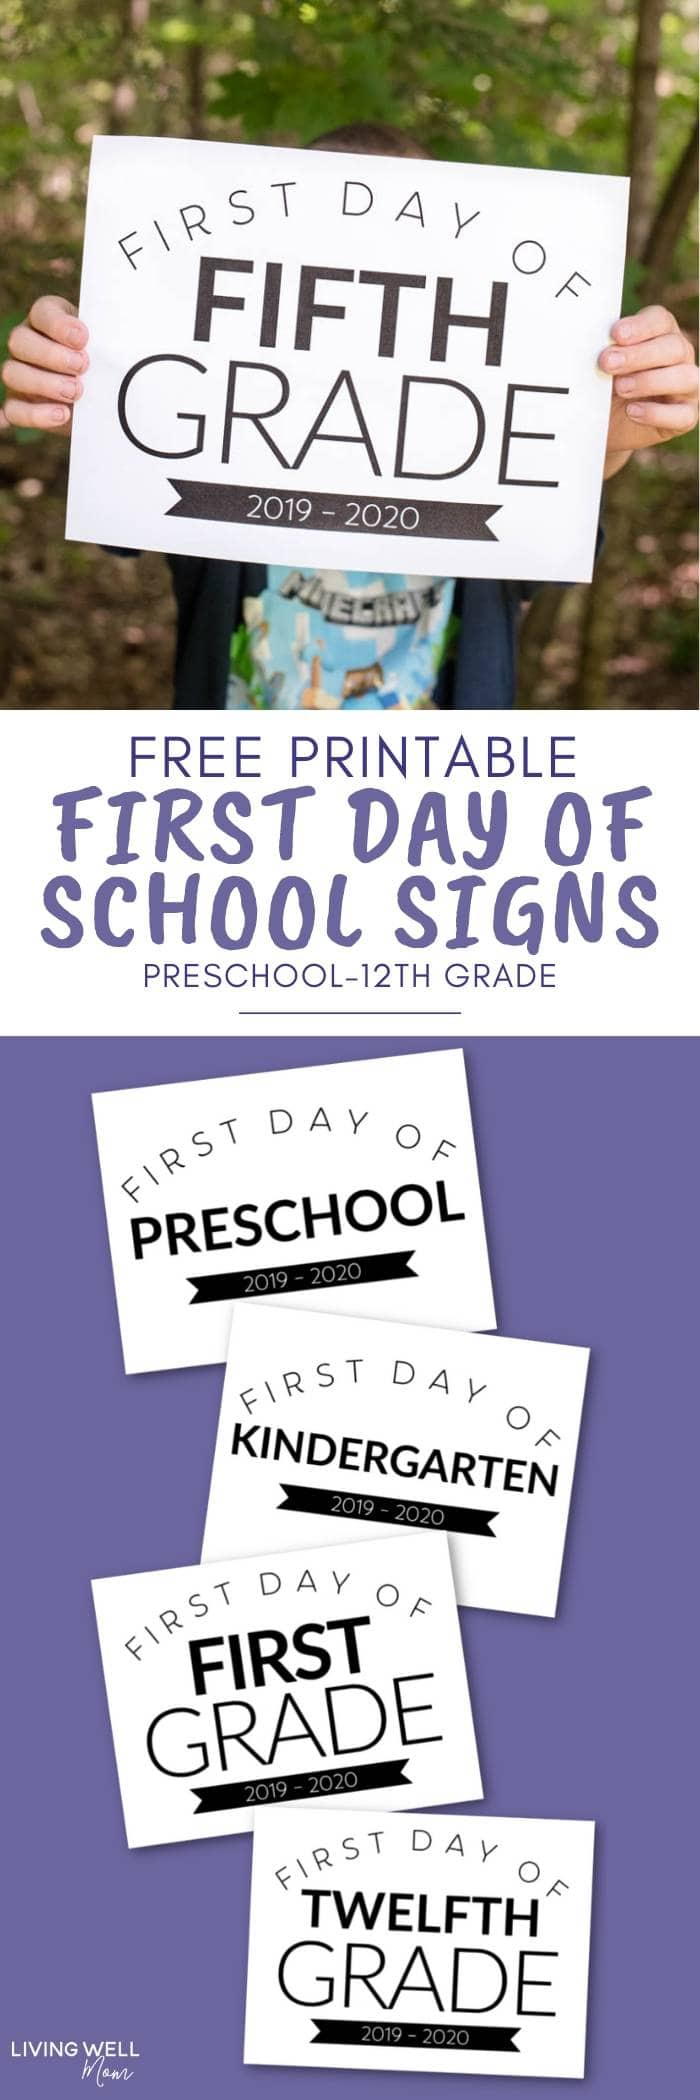 image about Printable First Day of School Signs referred to as Absolutely free Printable To start with Working day of University Signs or symptoms for All Grades